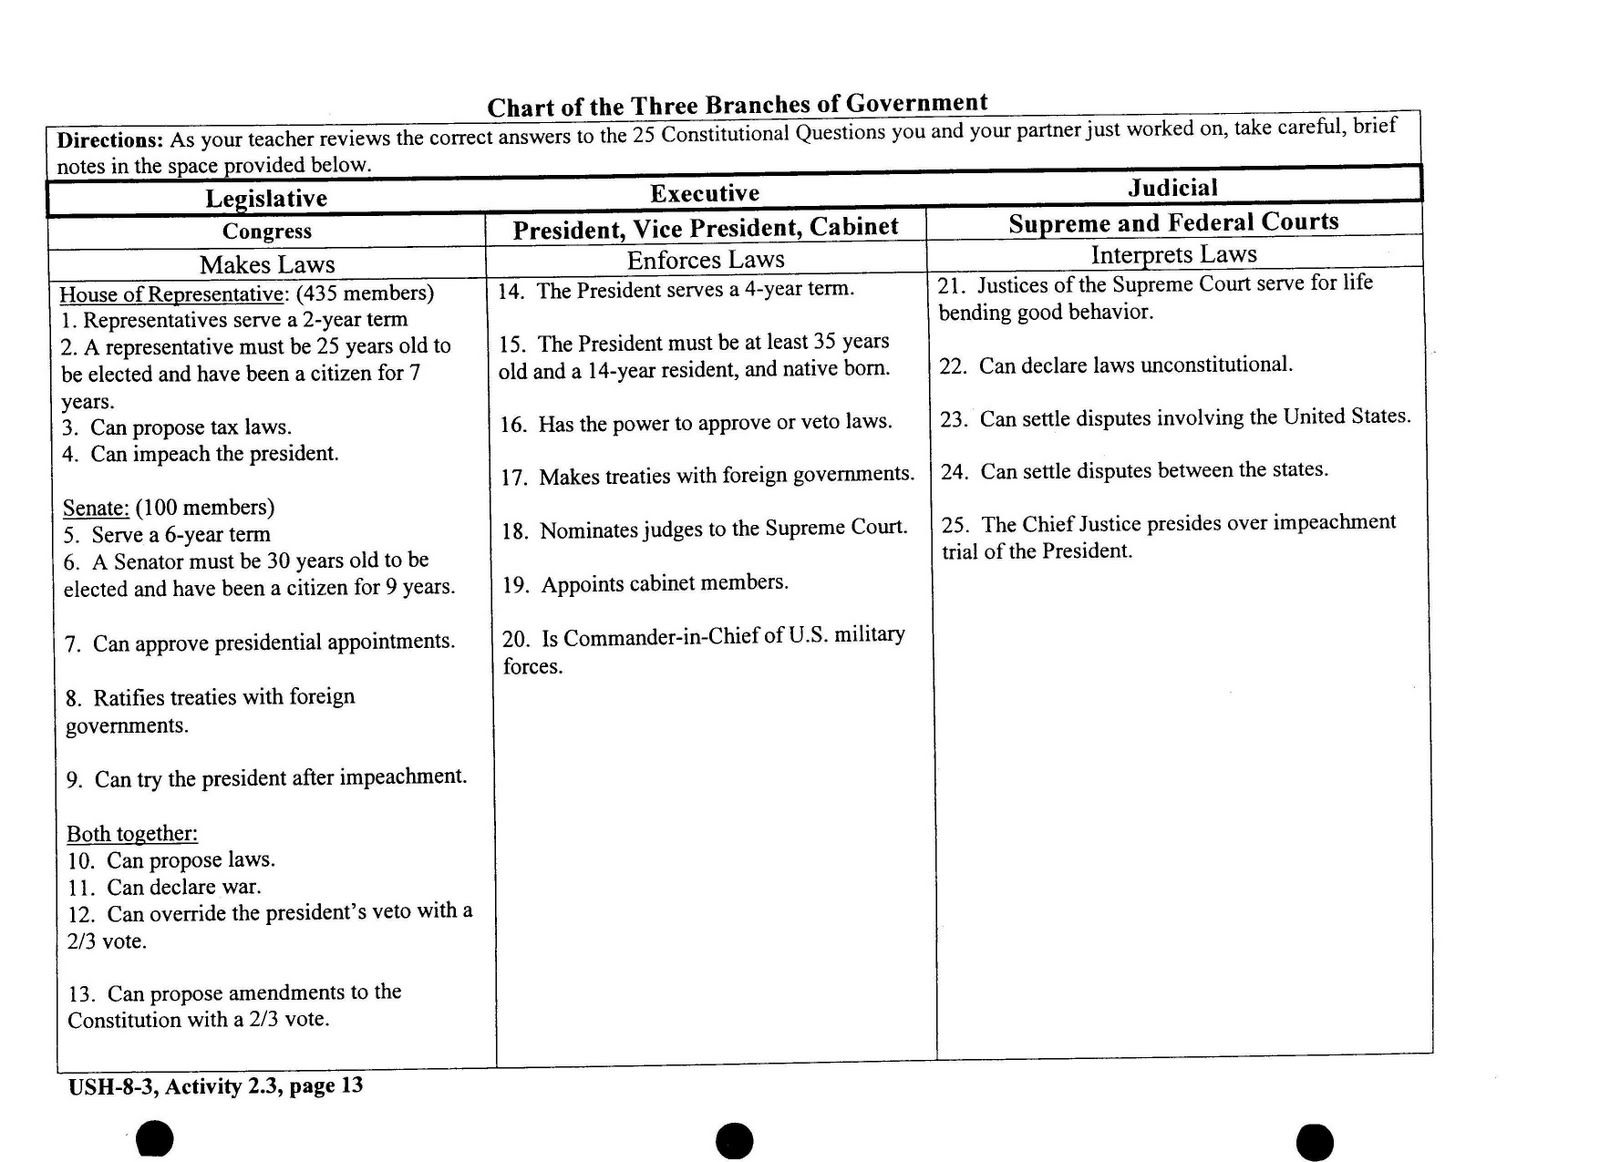 Worksheets Branches Of Government Worksheets three branches of government worksheet gms 6th grade social studies chart and